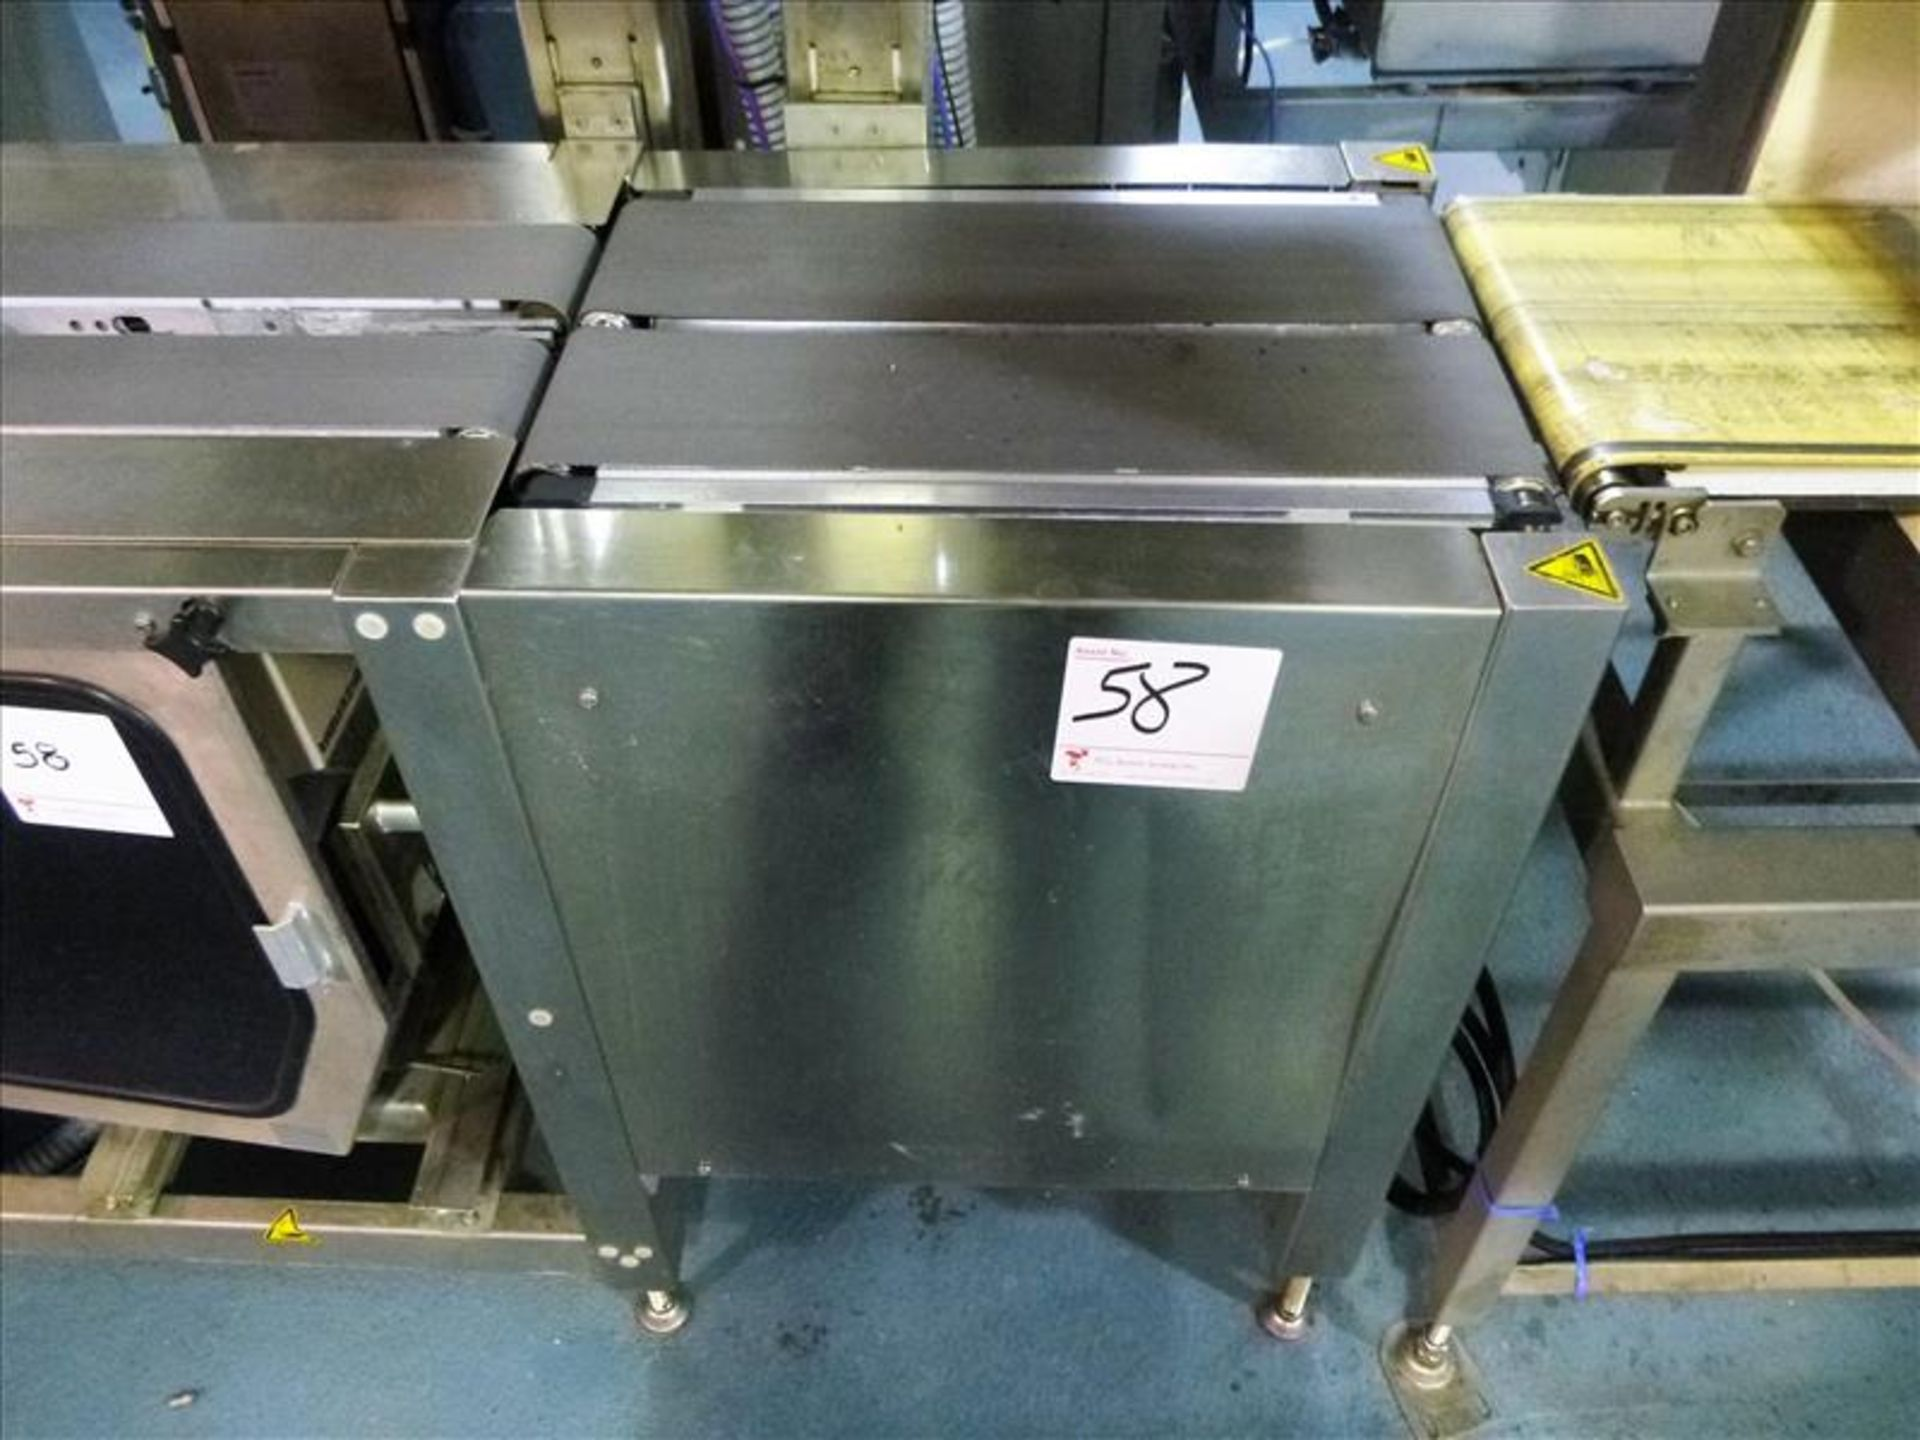 Lot 58 - Bizerba in-line check-weigher system (SLAVE2) w/ Bizerba GS label printer, ser. no. 1960600 and